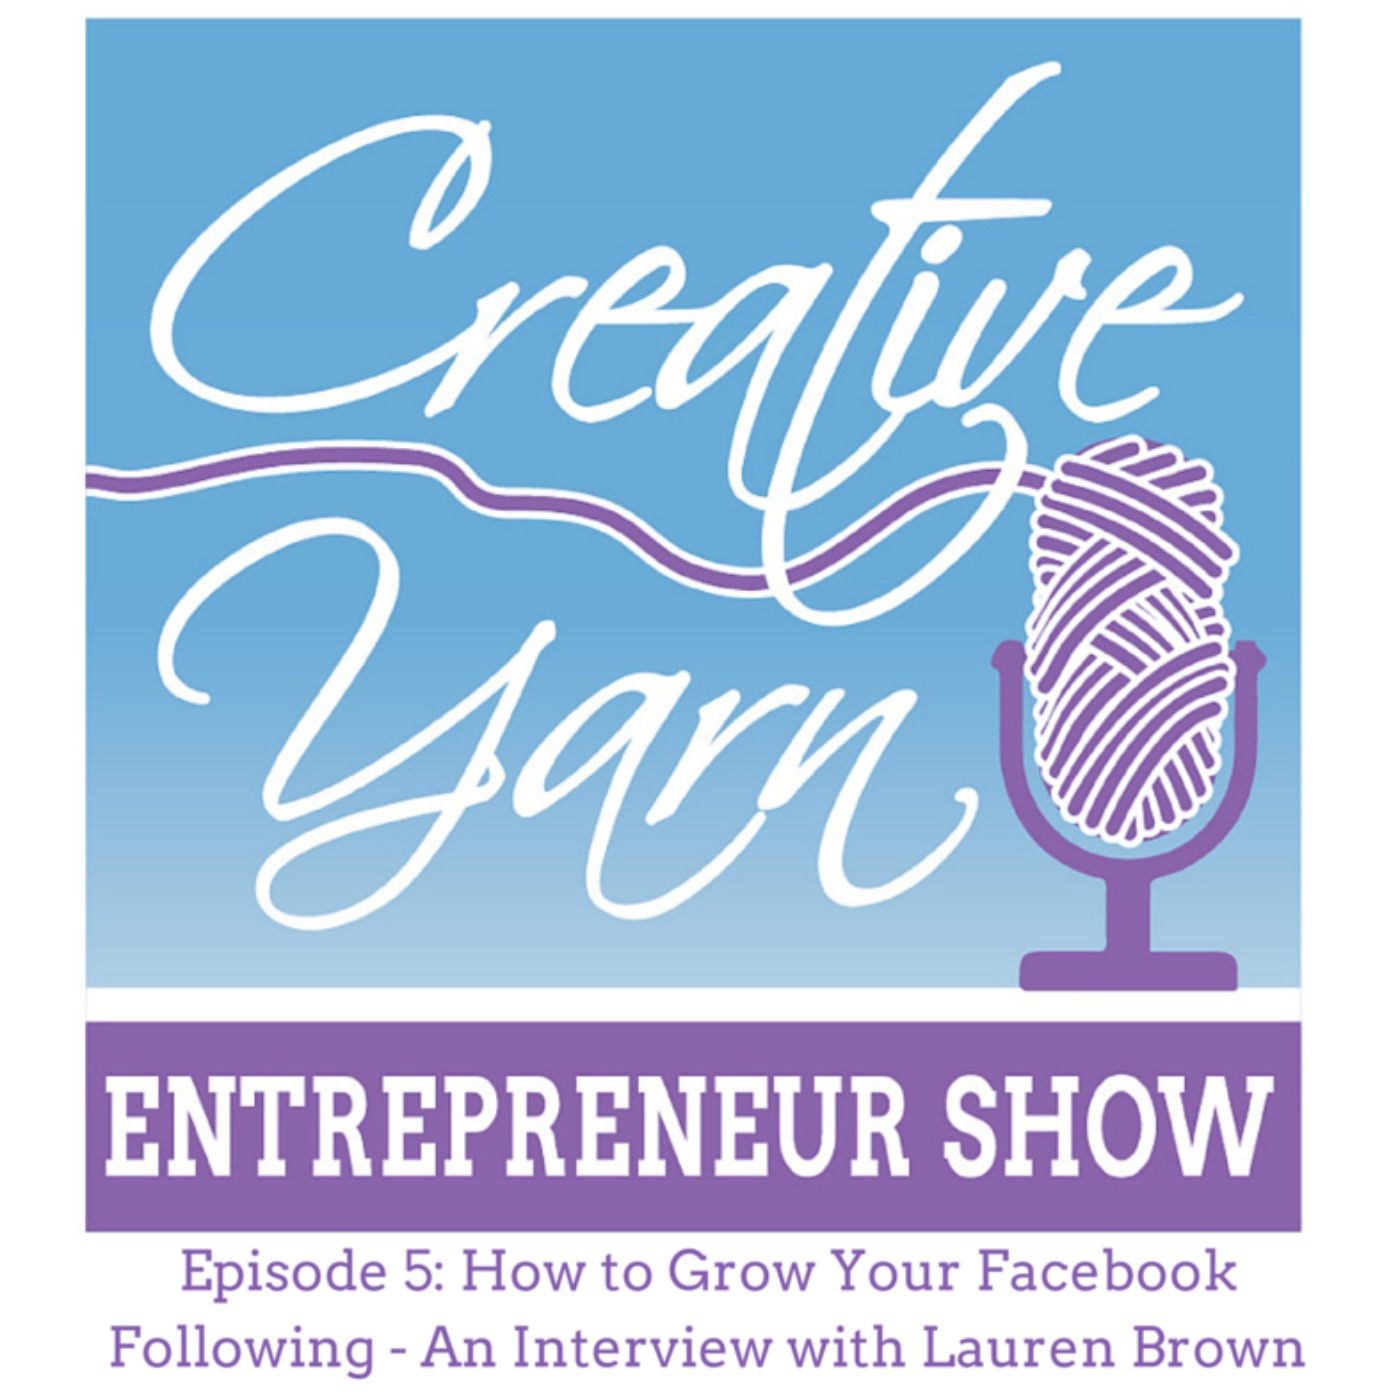 Episode 5: How to Grow Your Facebook Following: An Interview with Lauren Brown from Daisy Cottage Designs - The Creative Yarn Entrepreneur Show